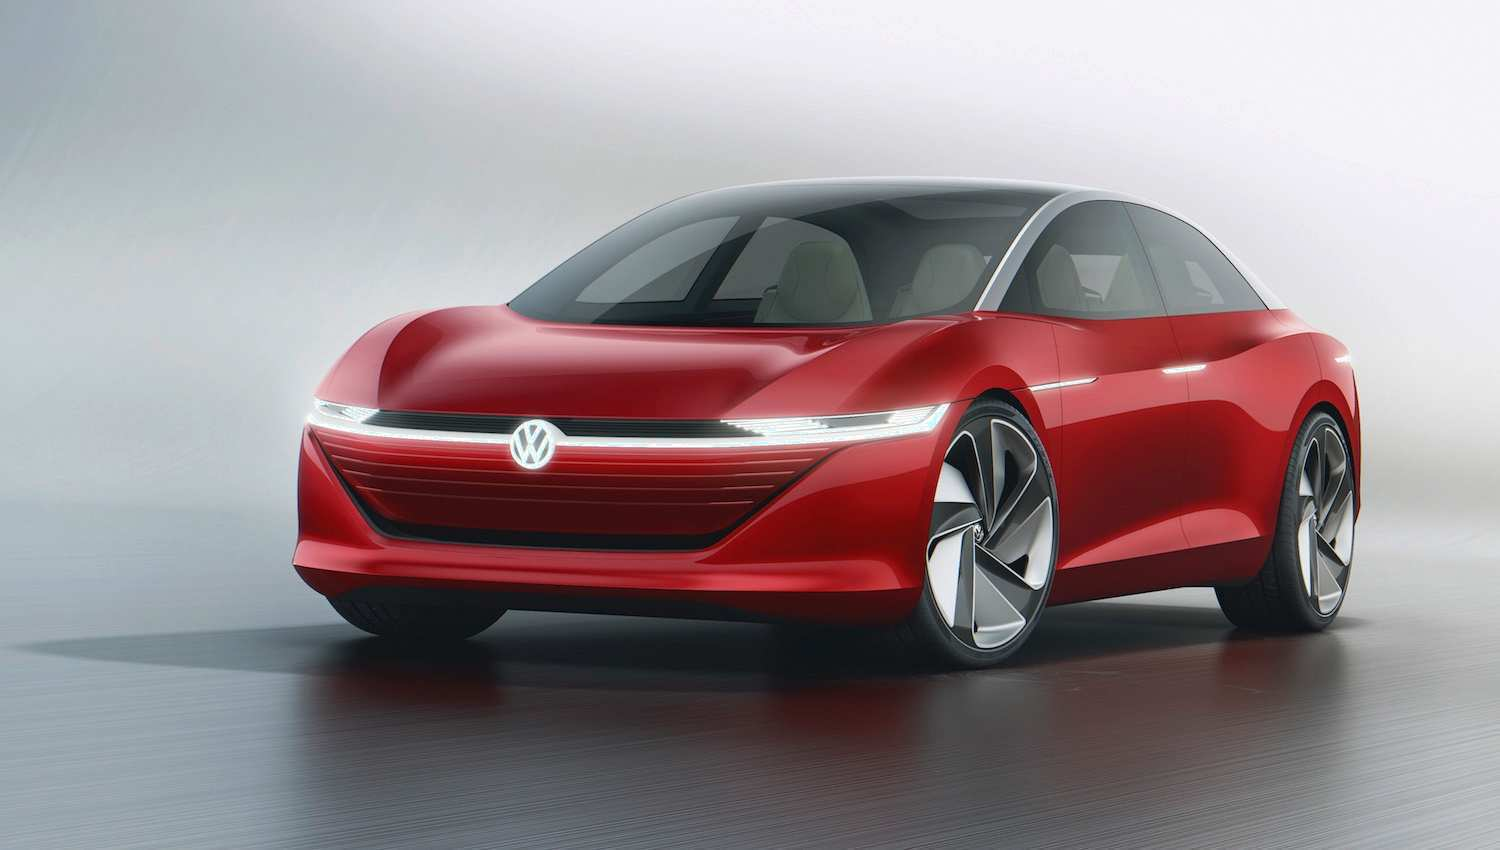 41 Gallery of Vw 2019 Ev Model for Vw 2019 Ev